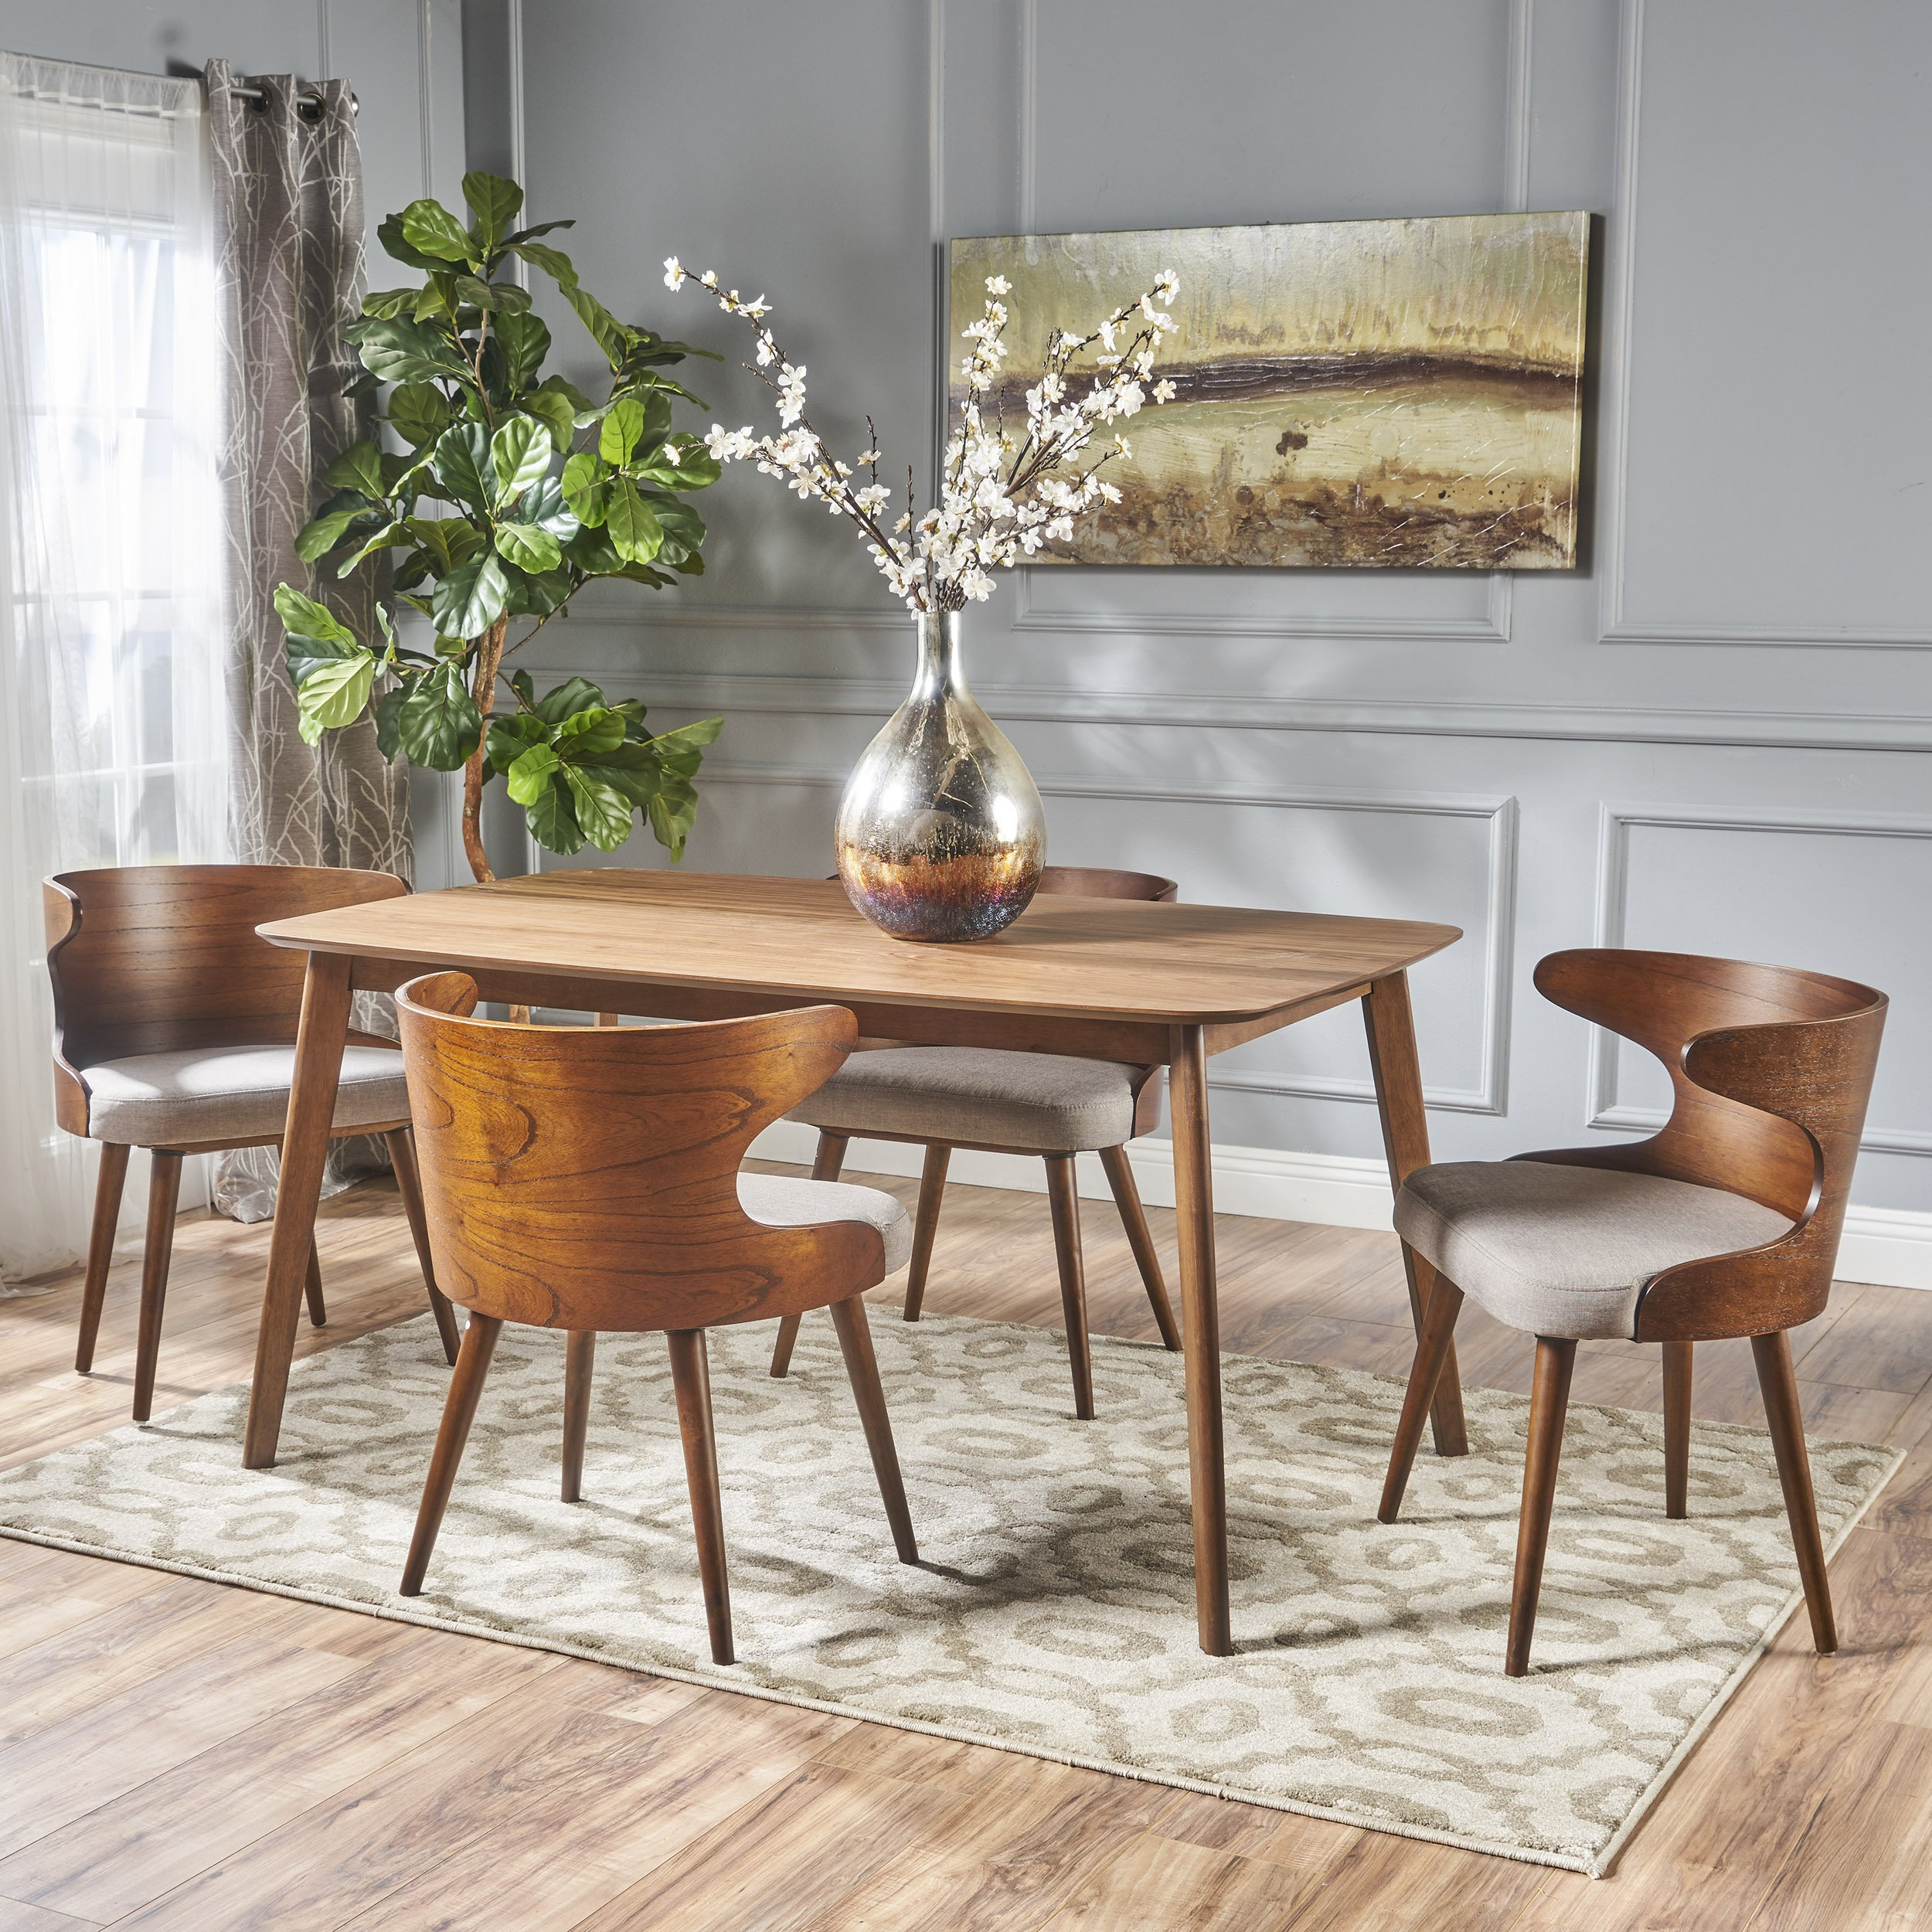 Brianne Mid Century Natural Walnut Finished 5 Piece Wood Dining Set with Dark Beige Fabric Chairs